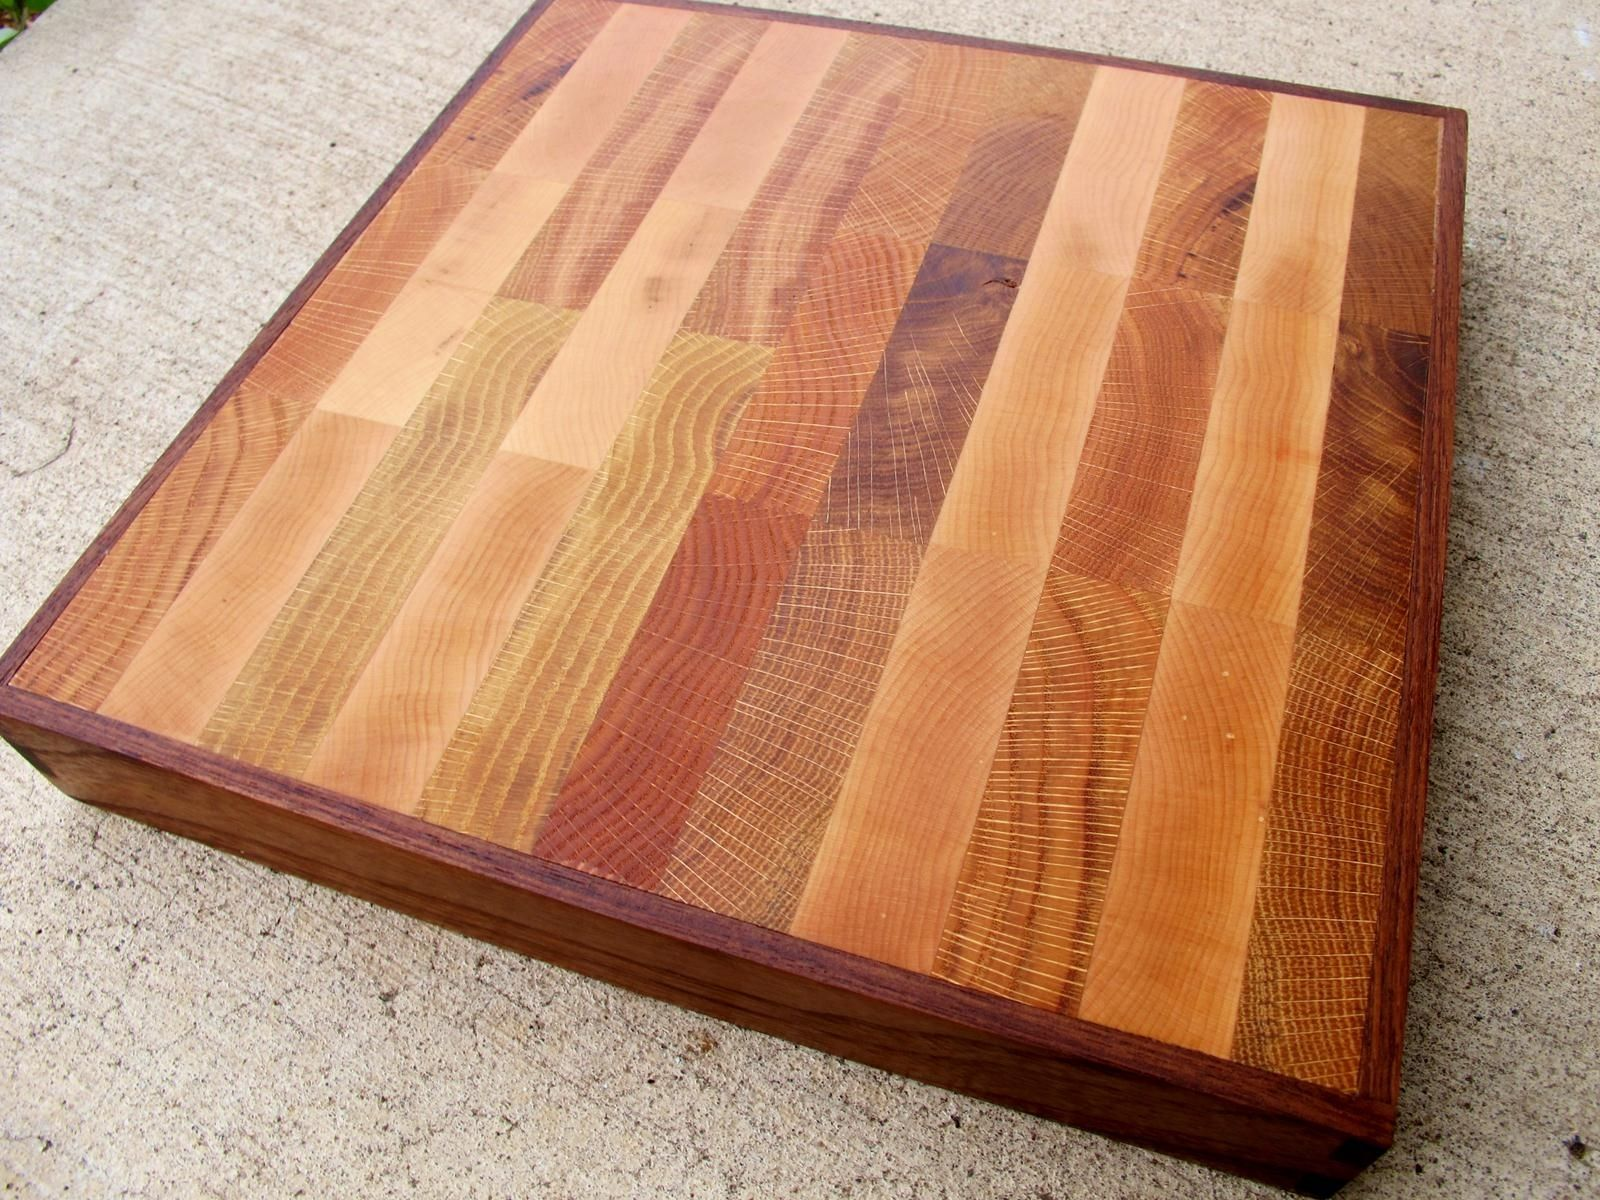 Round butcher block kitchen table - Custom Made Personalized End Grain Cutting Board Dovetail Framed In